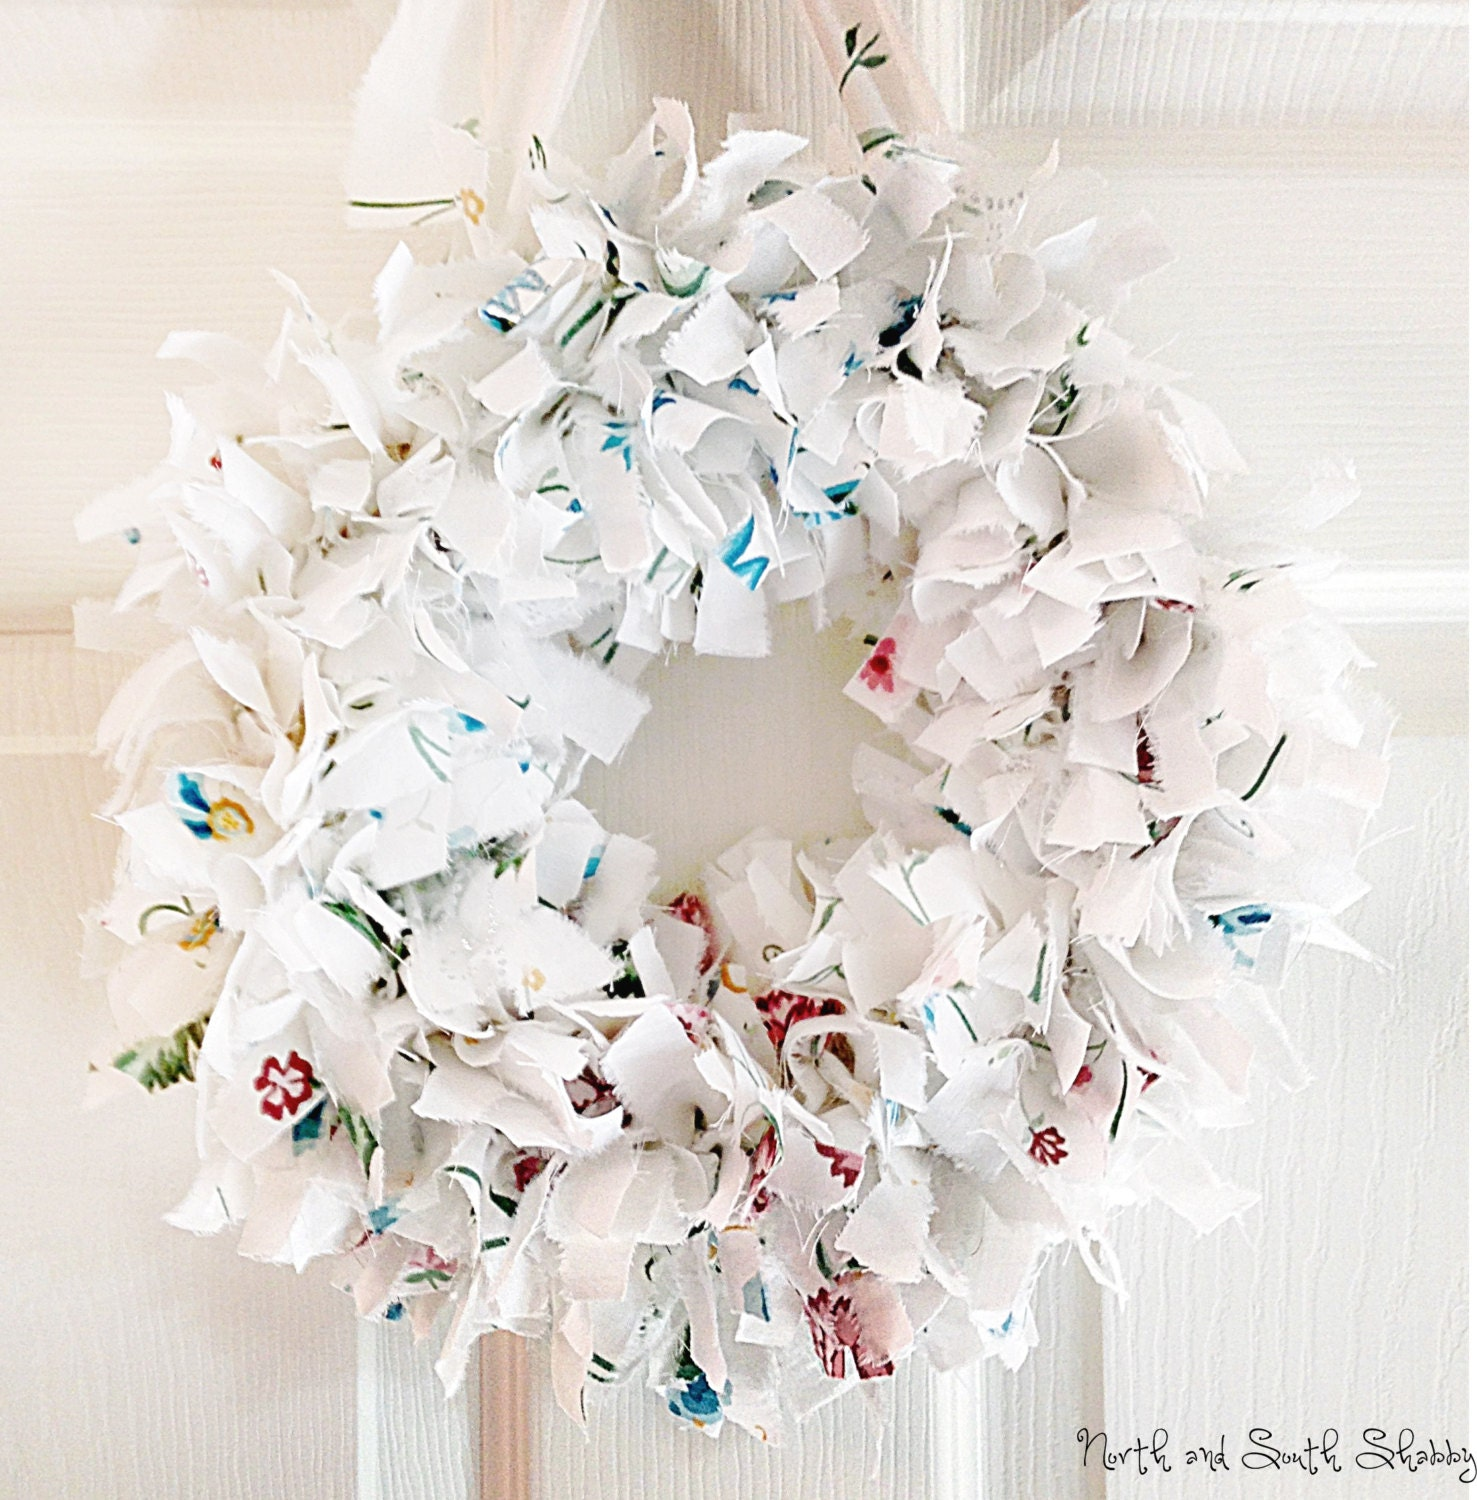 Shabby White Rag Wreath Wall Decor, Table Centerpiece, Home Decor - northandsouthshabby